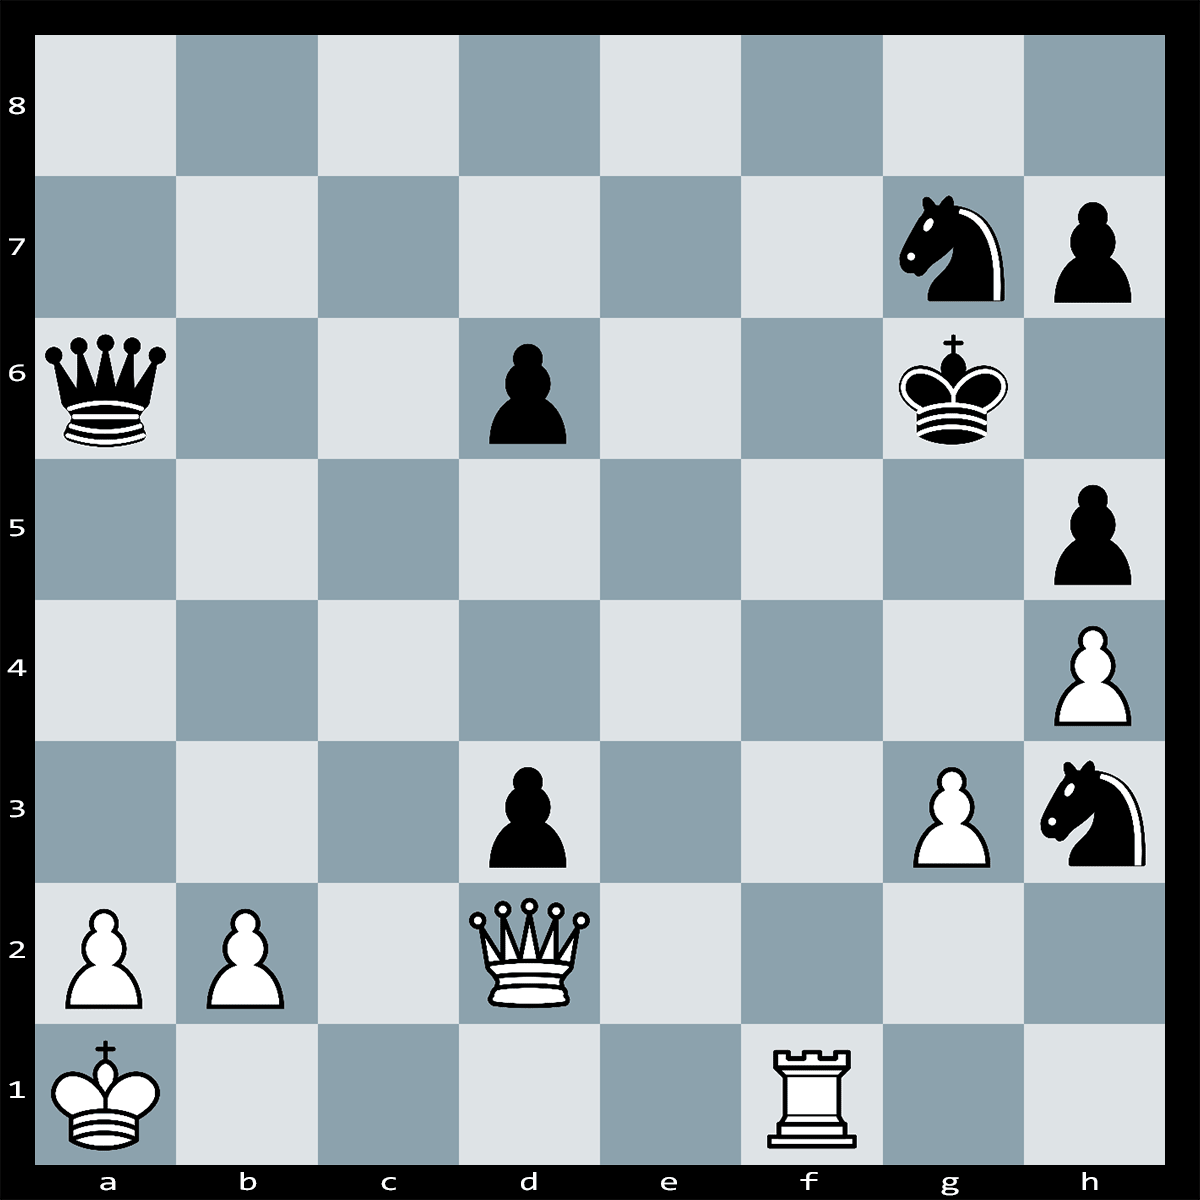 Mate in 2 Moves, White to Play - Chess Puzzle #30